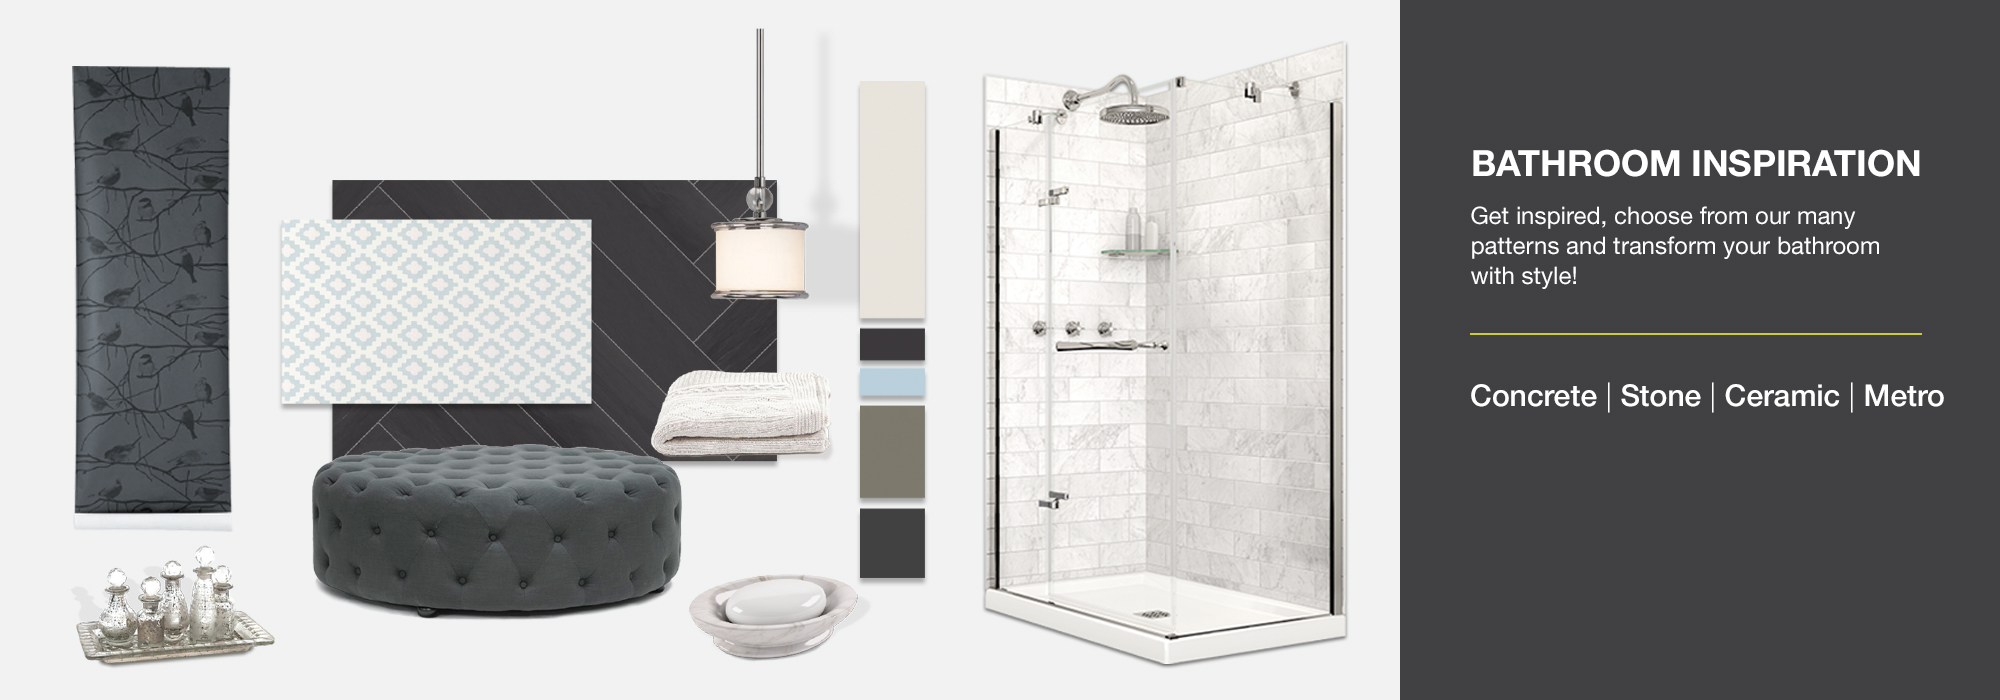 Bathroom Design Ideas for your Home | by MAAX